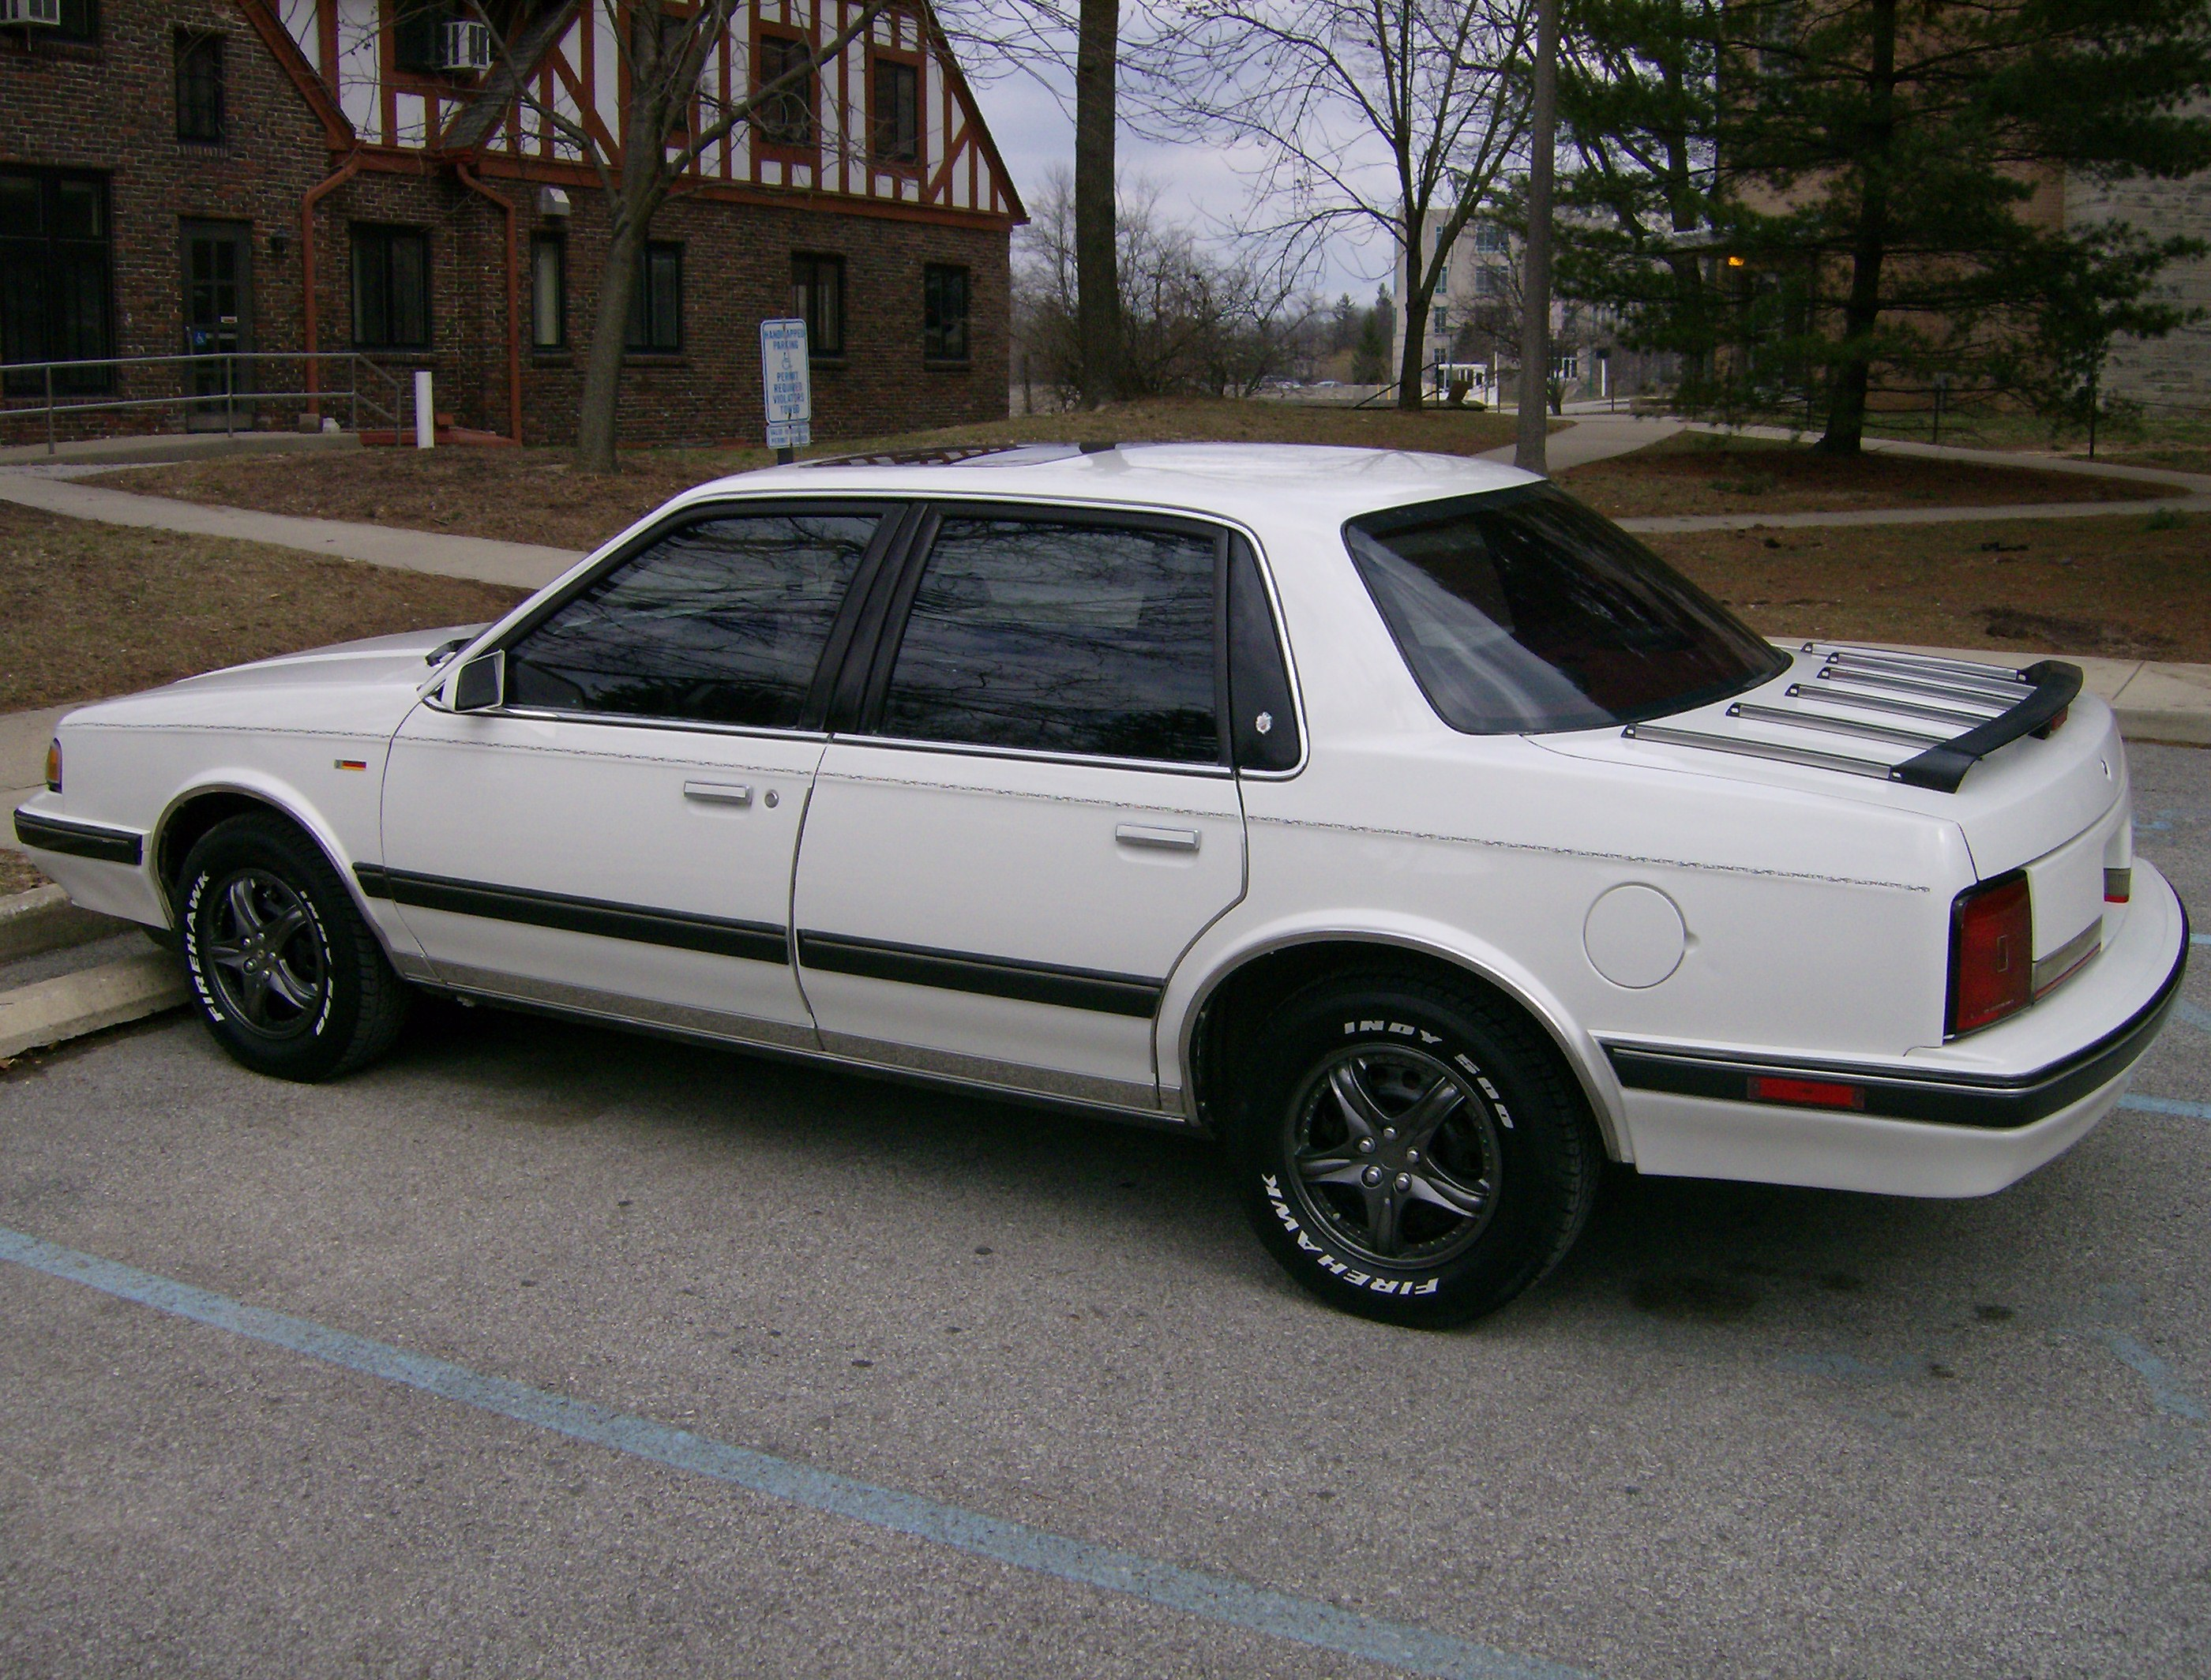 Shortened Cars >> Oldsmobile Cutlass Ciera history, photos on Better Parts LTD